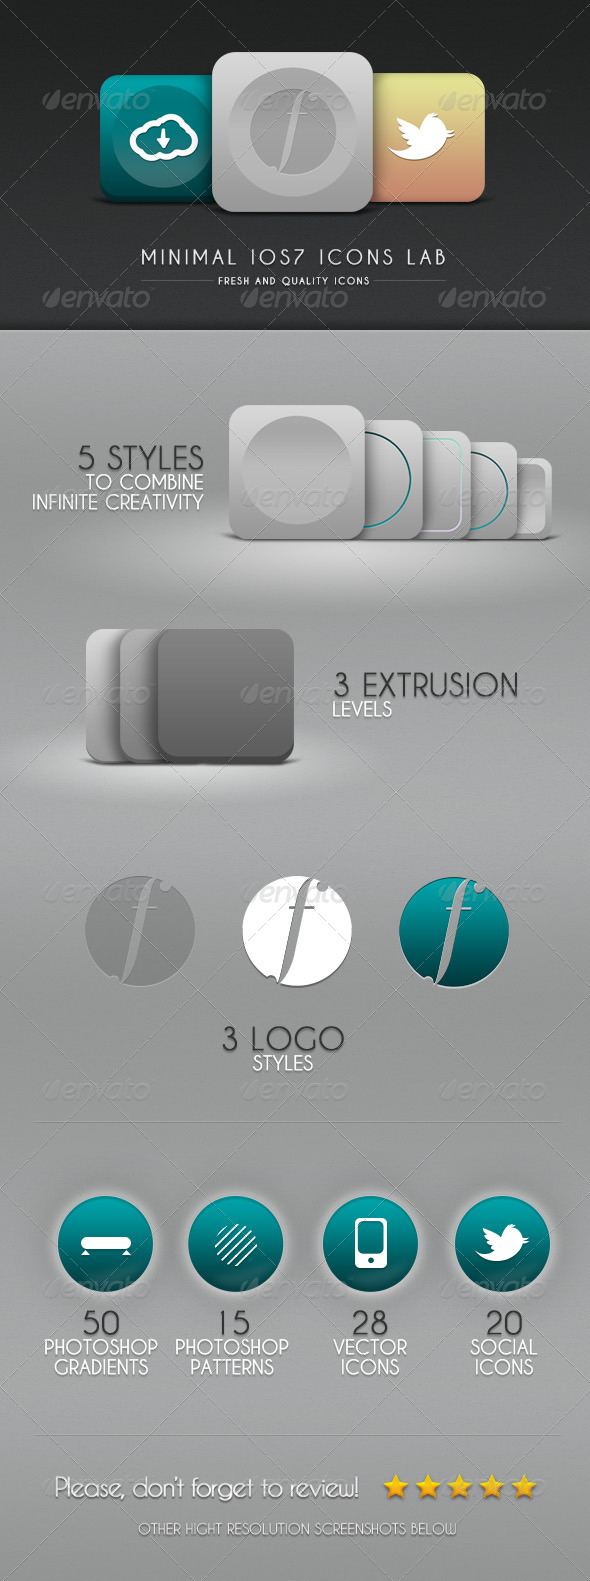 GraphicRiver Minimal iOs7 Icons Lab 5317203